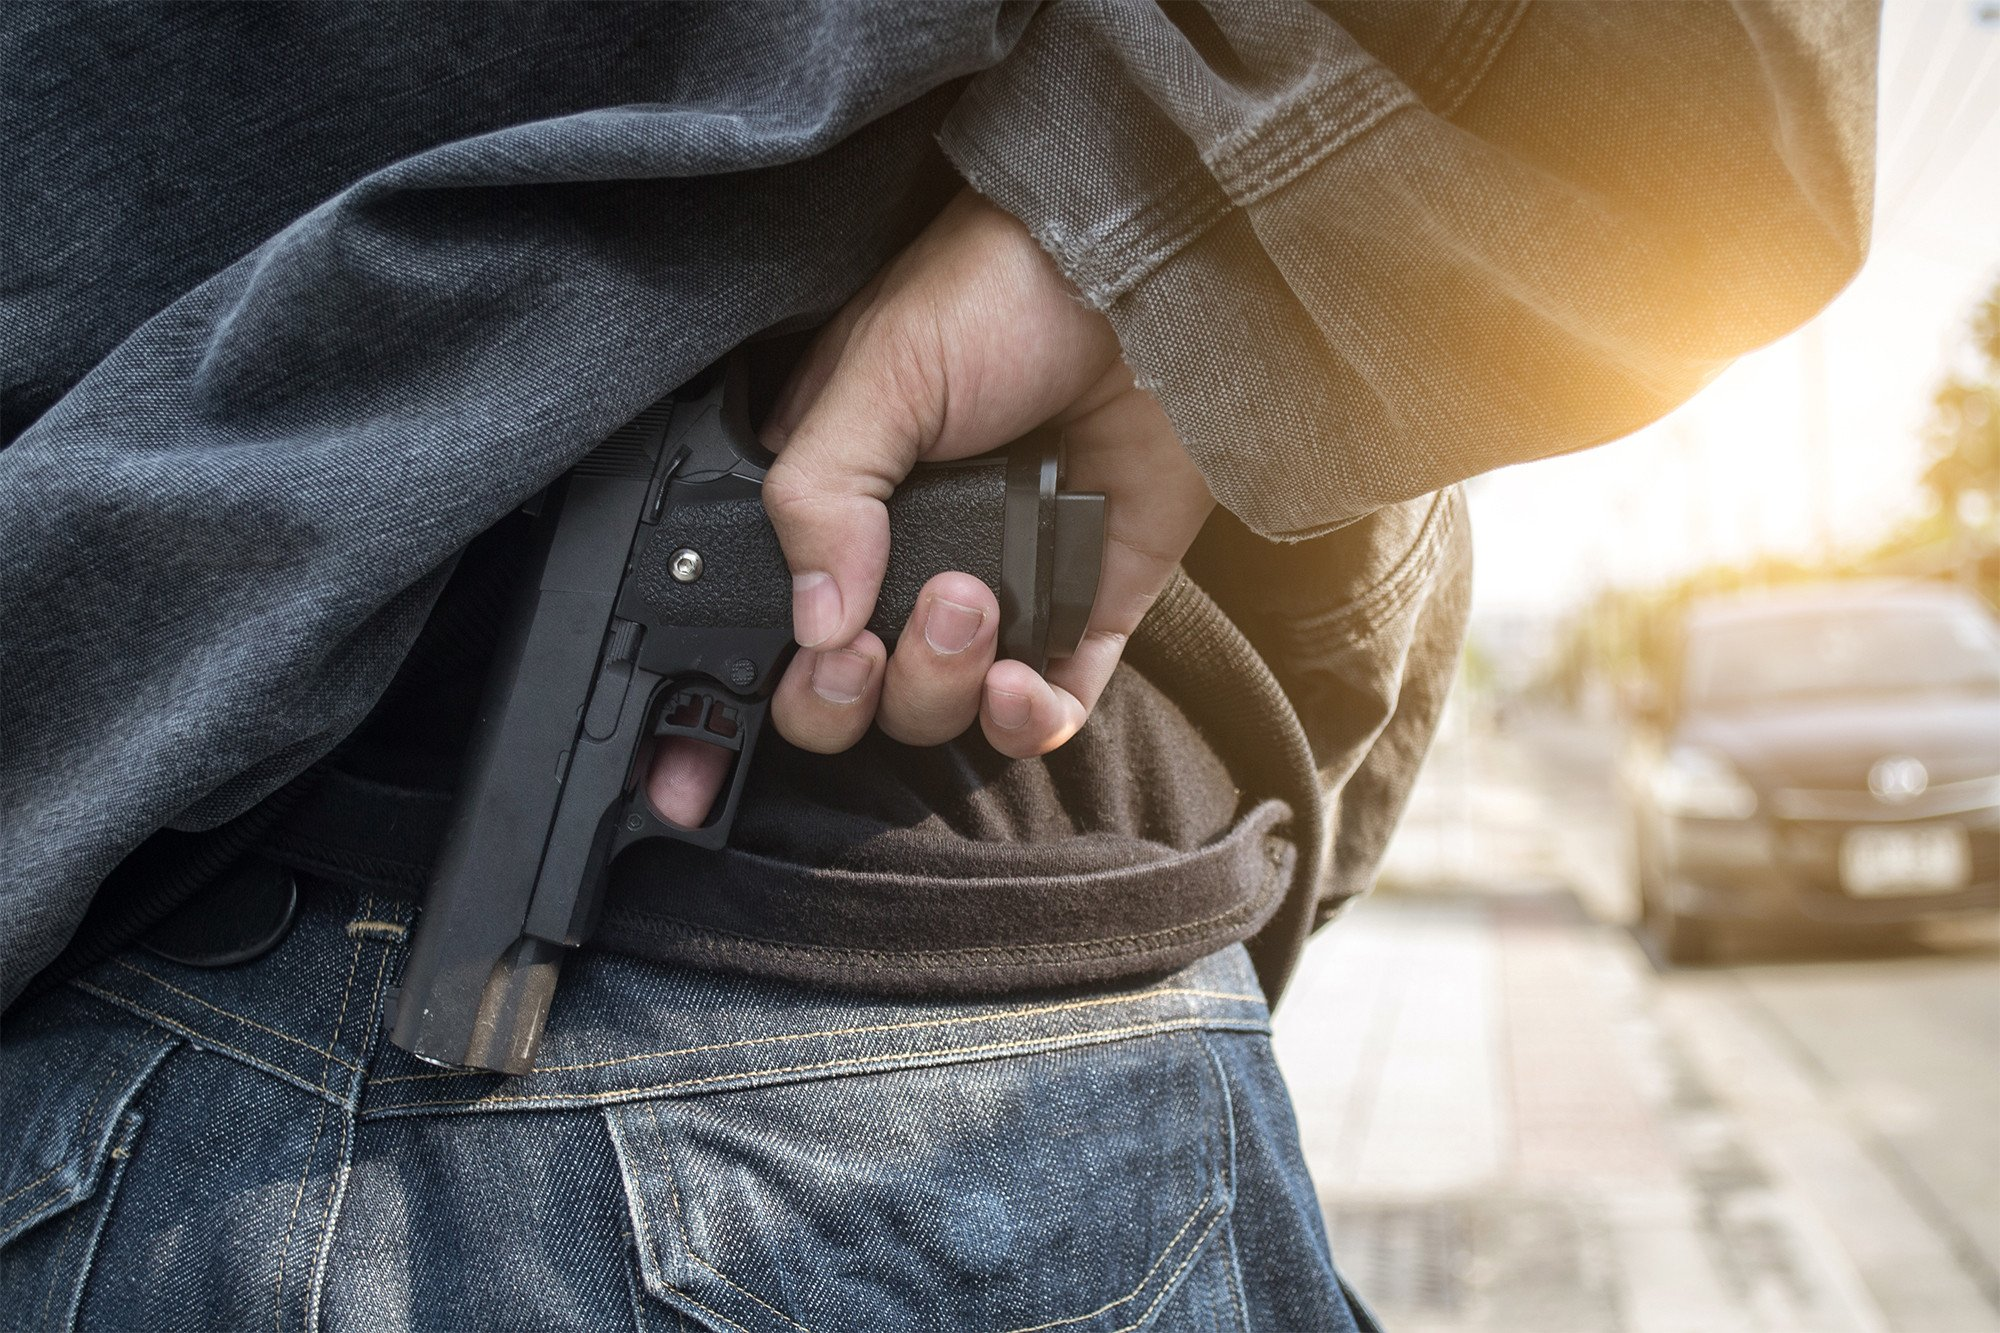 Federal employee faces discipline for pulling gun on vehicle owner